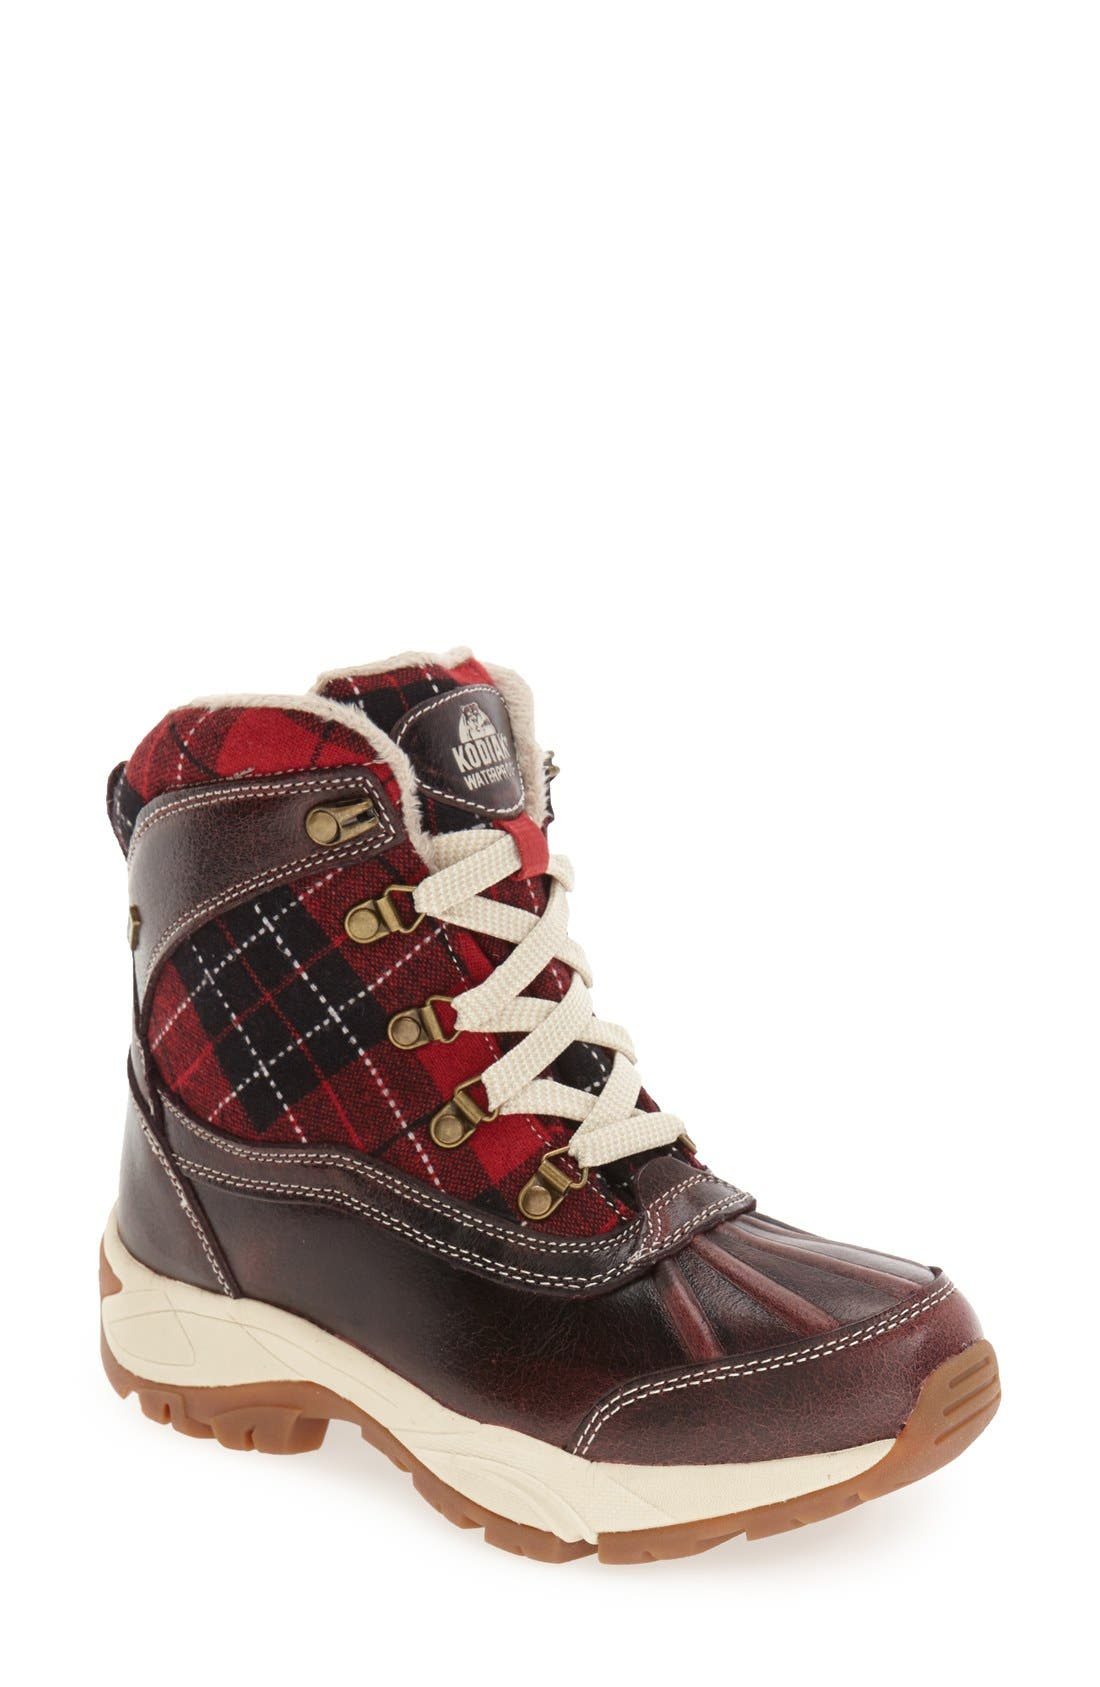 Main Image - Kodiak 'Rochelle' Waterproof Insulated Winter Boot (Women)